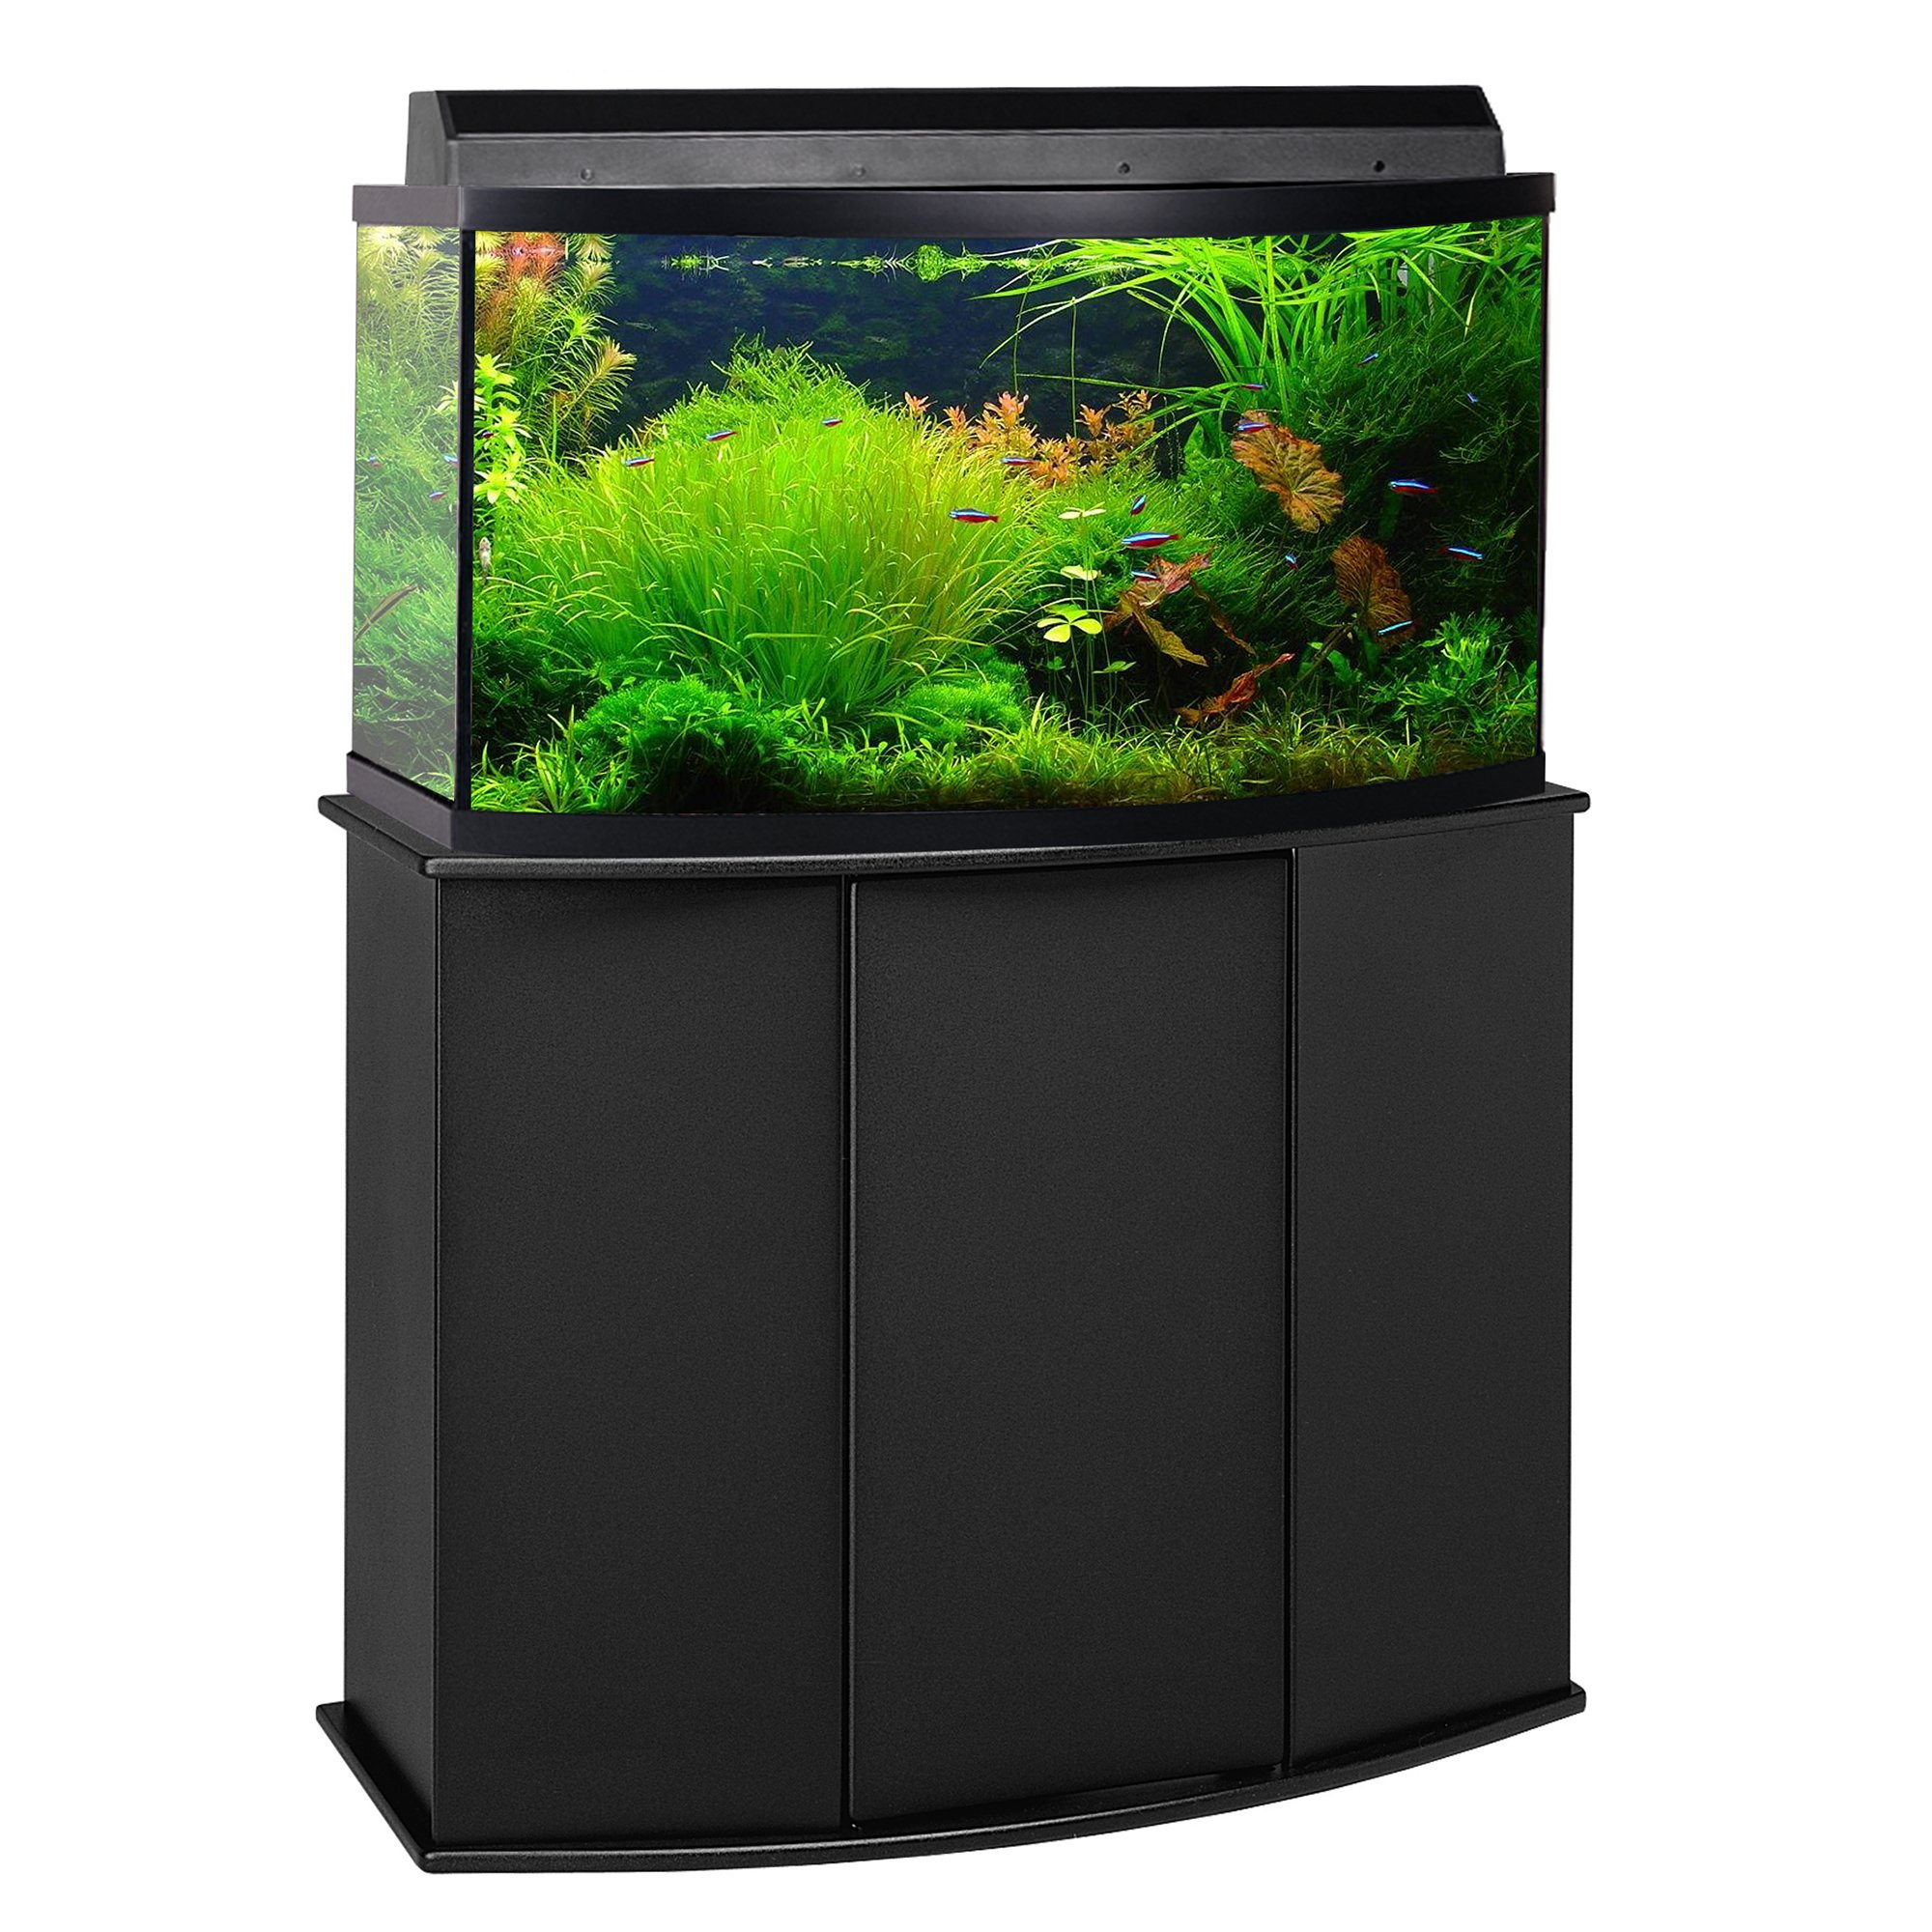 sc 1 st  Petco & Aquatic Fundamentals 46 Gallon Bowfront Aquarium Stand | Petco